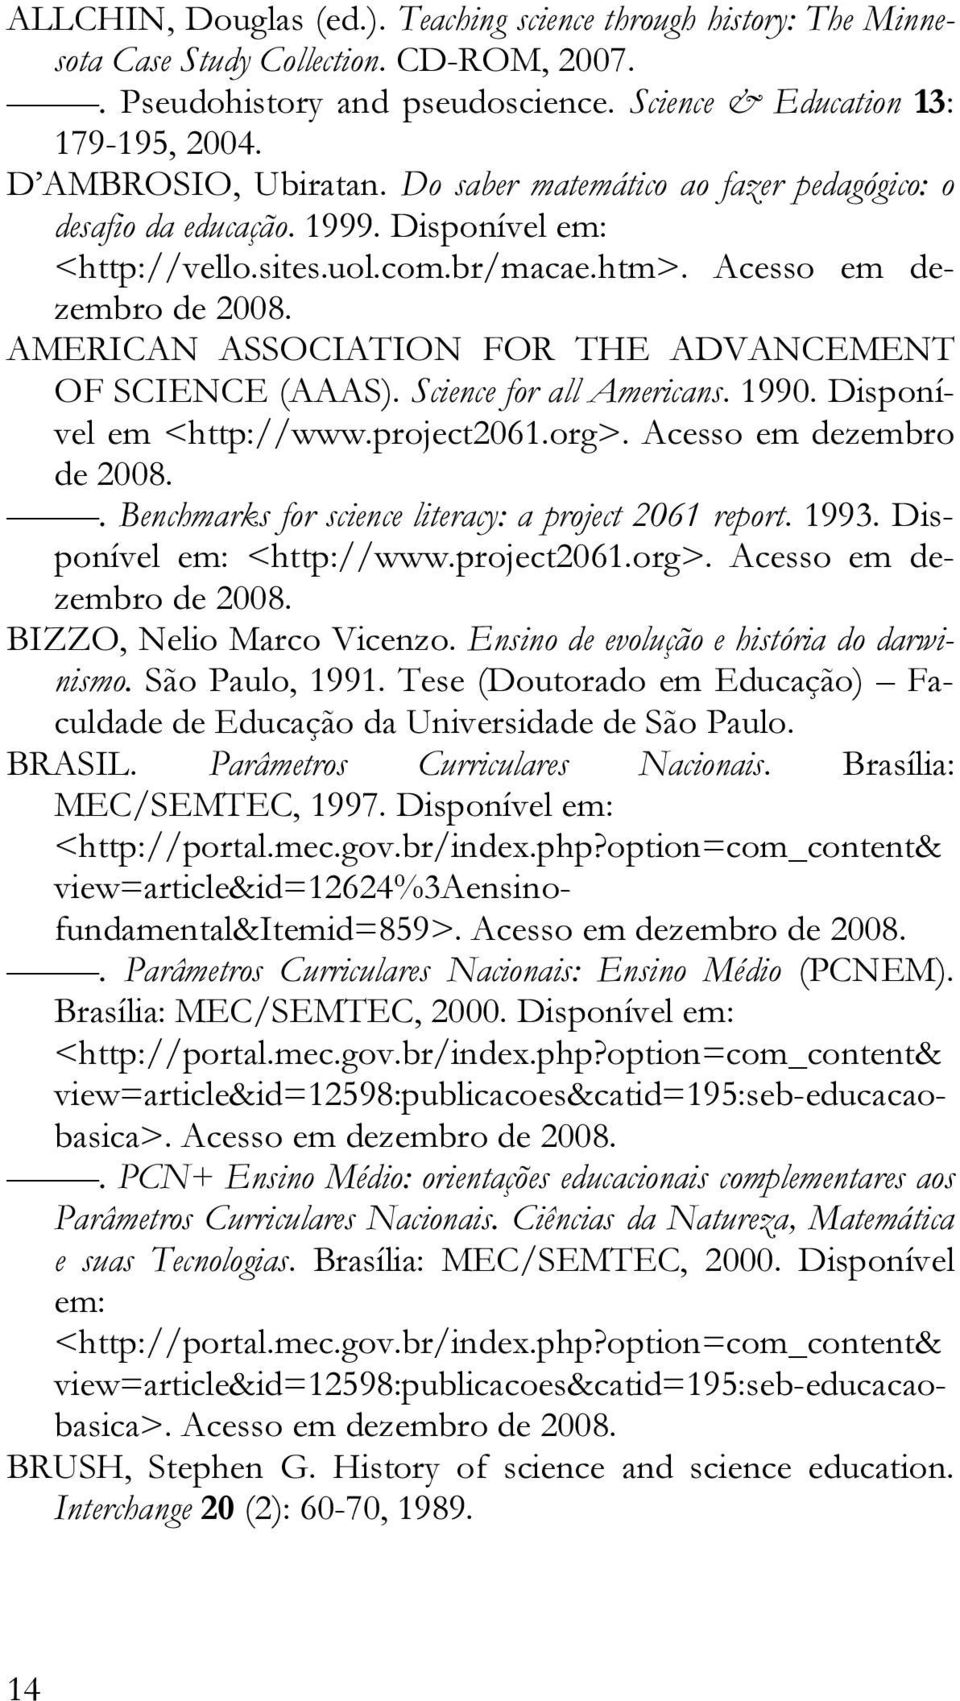 AMERICAN ASSOCIATION FOR THE ADVANCEMENT OF SCIENCE (AAAS). Science for all Americans. 1990. Disponível em <http://www.project2061.org>. Acesso em dezembro de 2008.